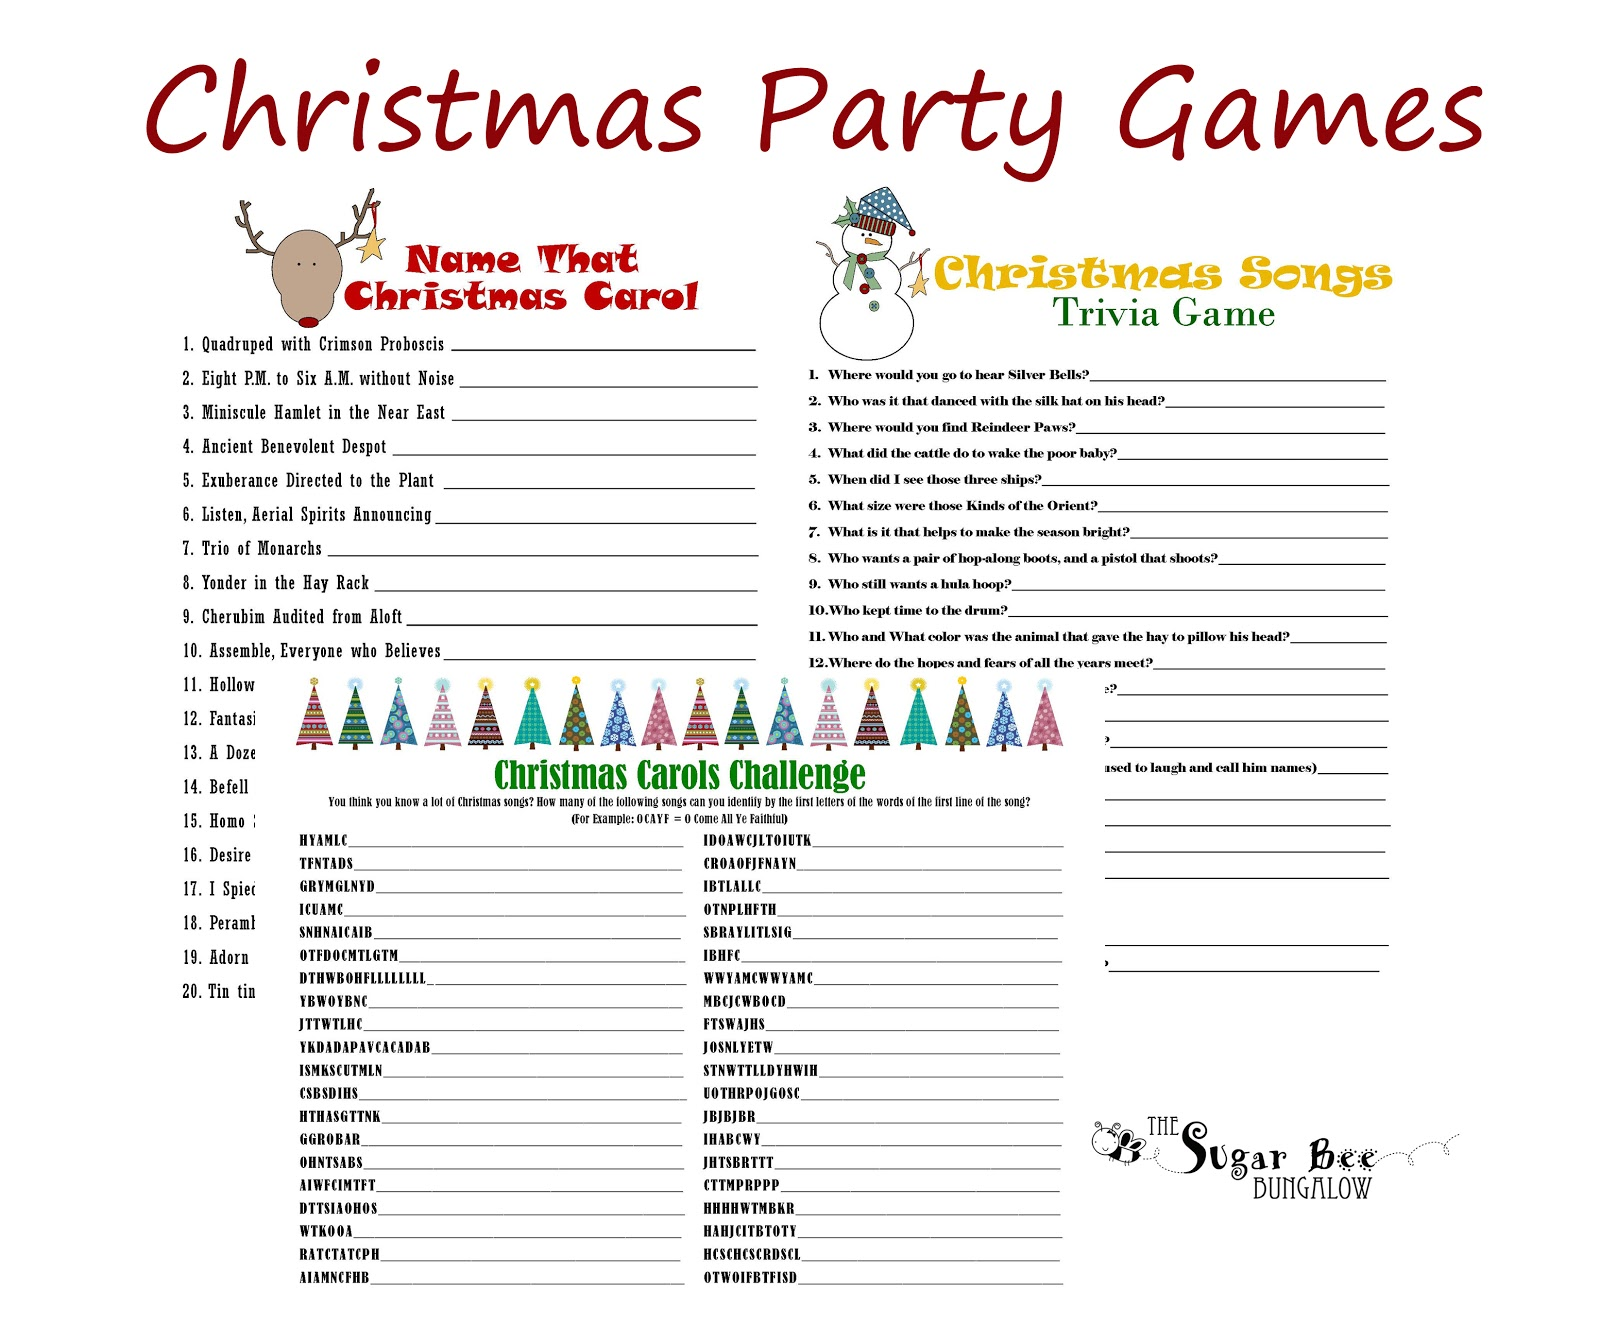 Games For Christmas Party In Office | Home Decorating, Interior ...